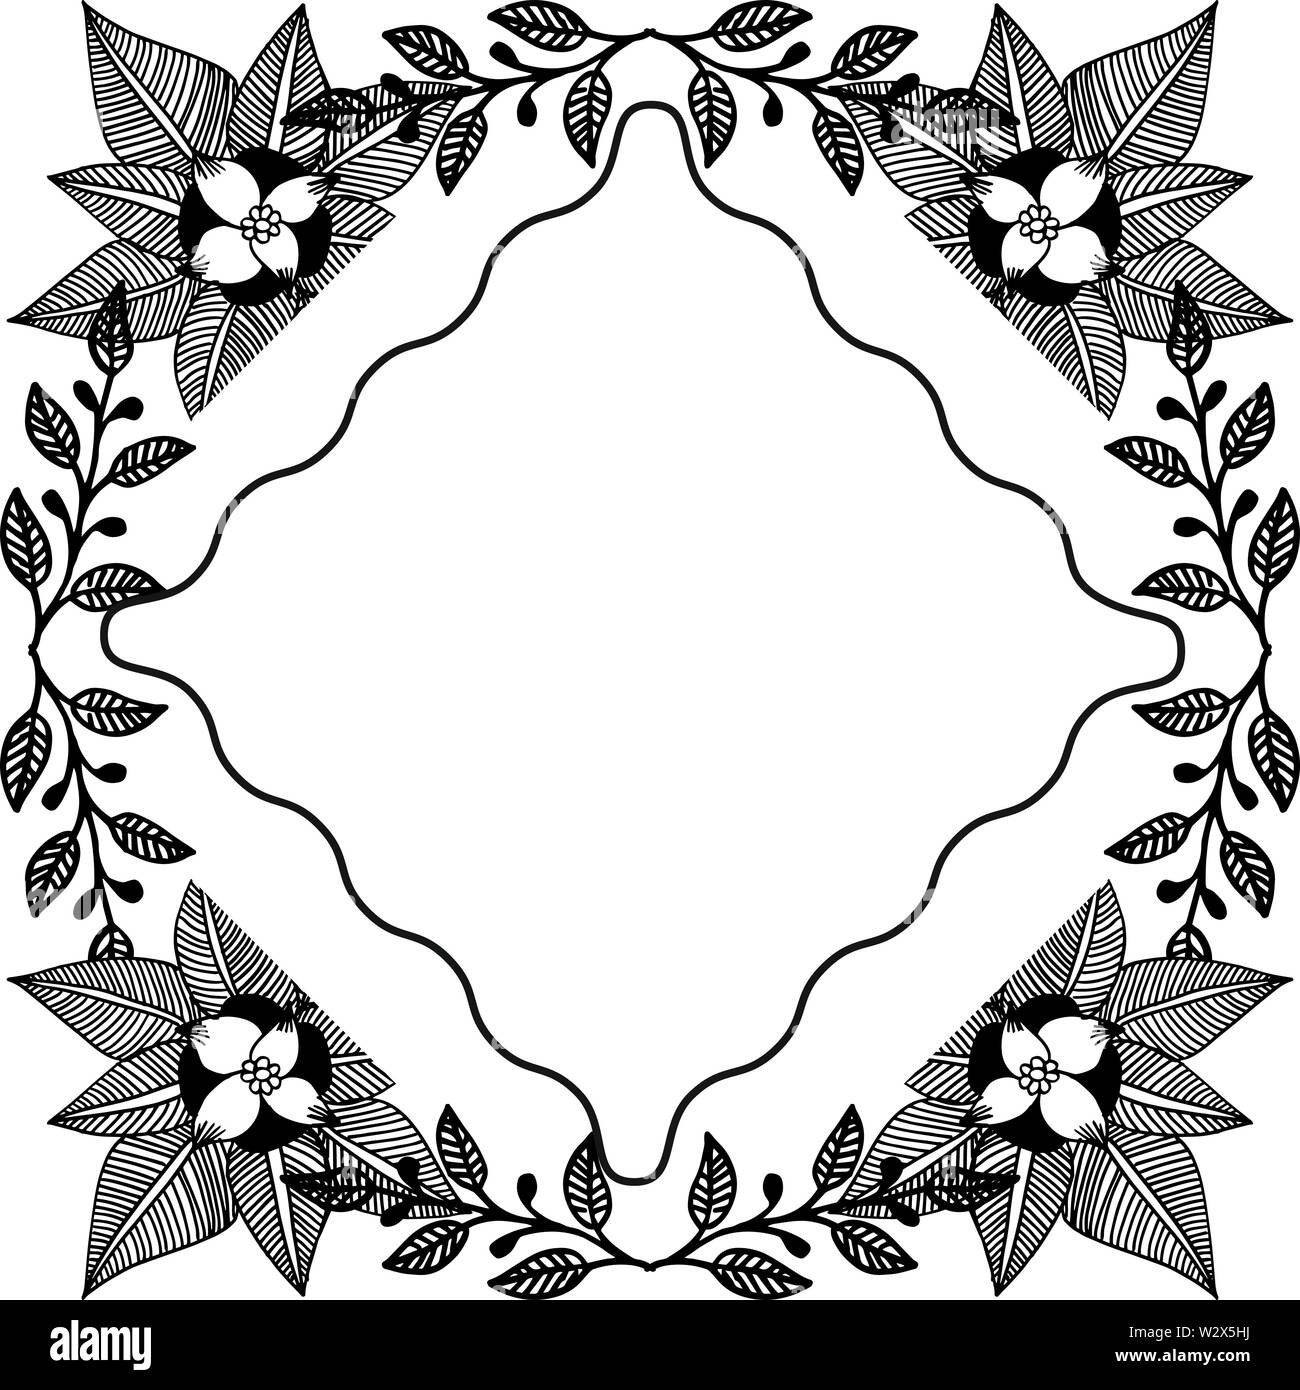 Design Floral With Silhouette Backdrop On A White Border